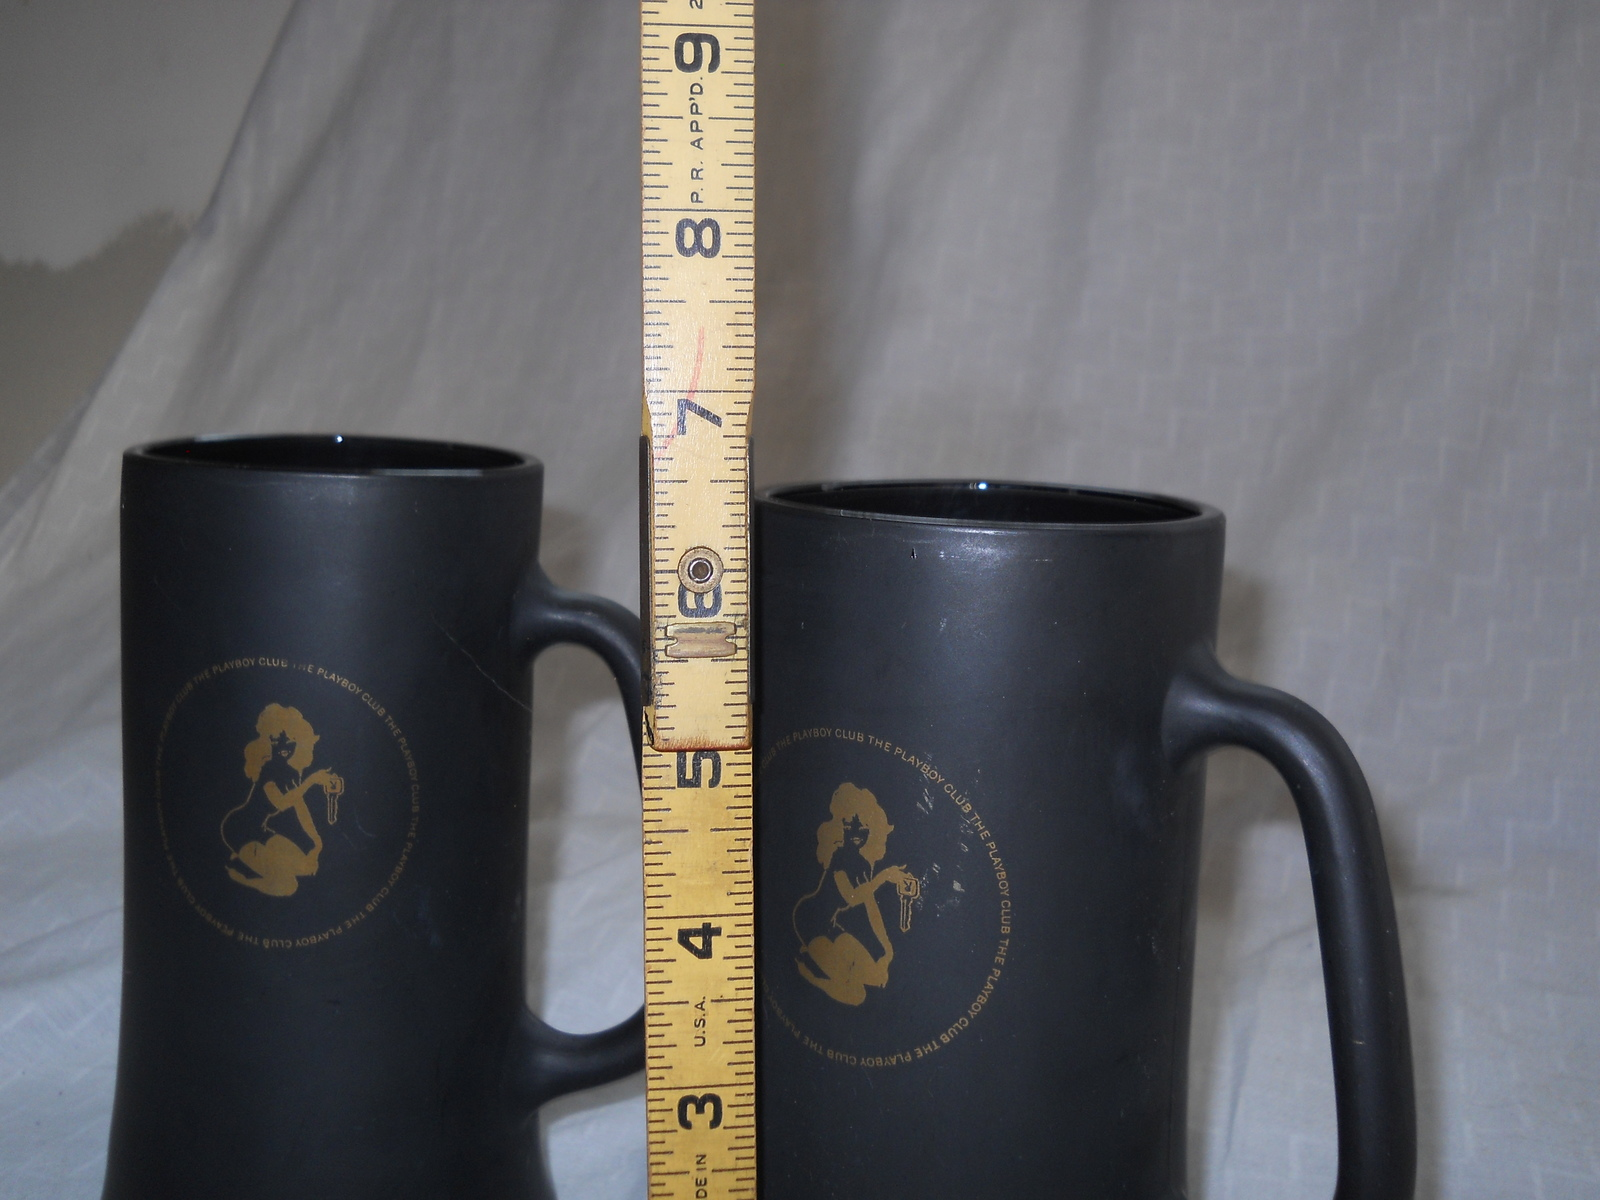 TWO PLAYBOY CLUB BLACK & GOLD FROSTY GLASS COFFEE MUGS, BEER STEIN CUP VTG 60's image 2